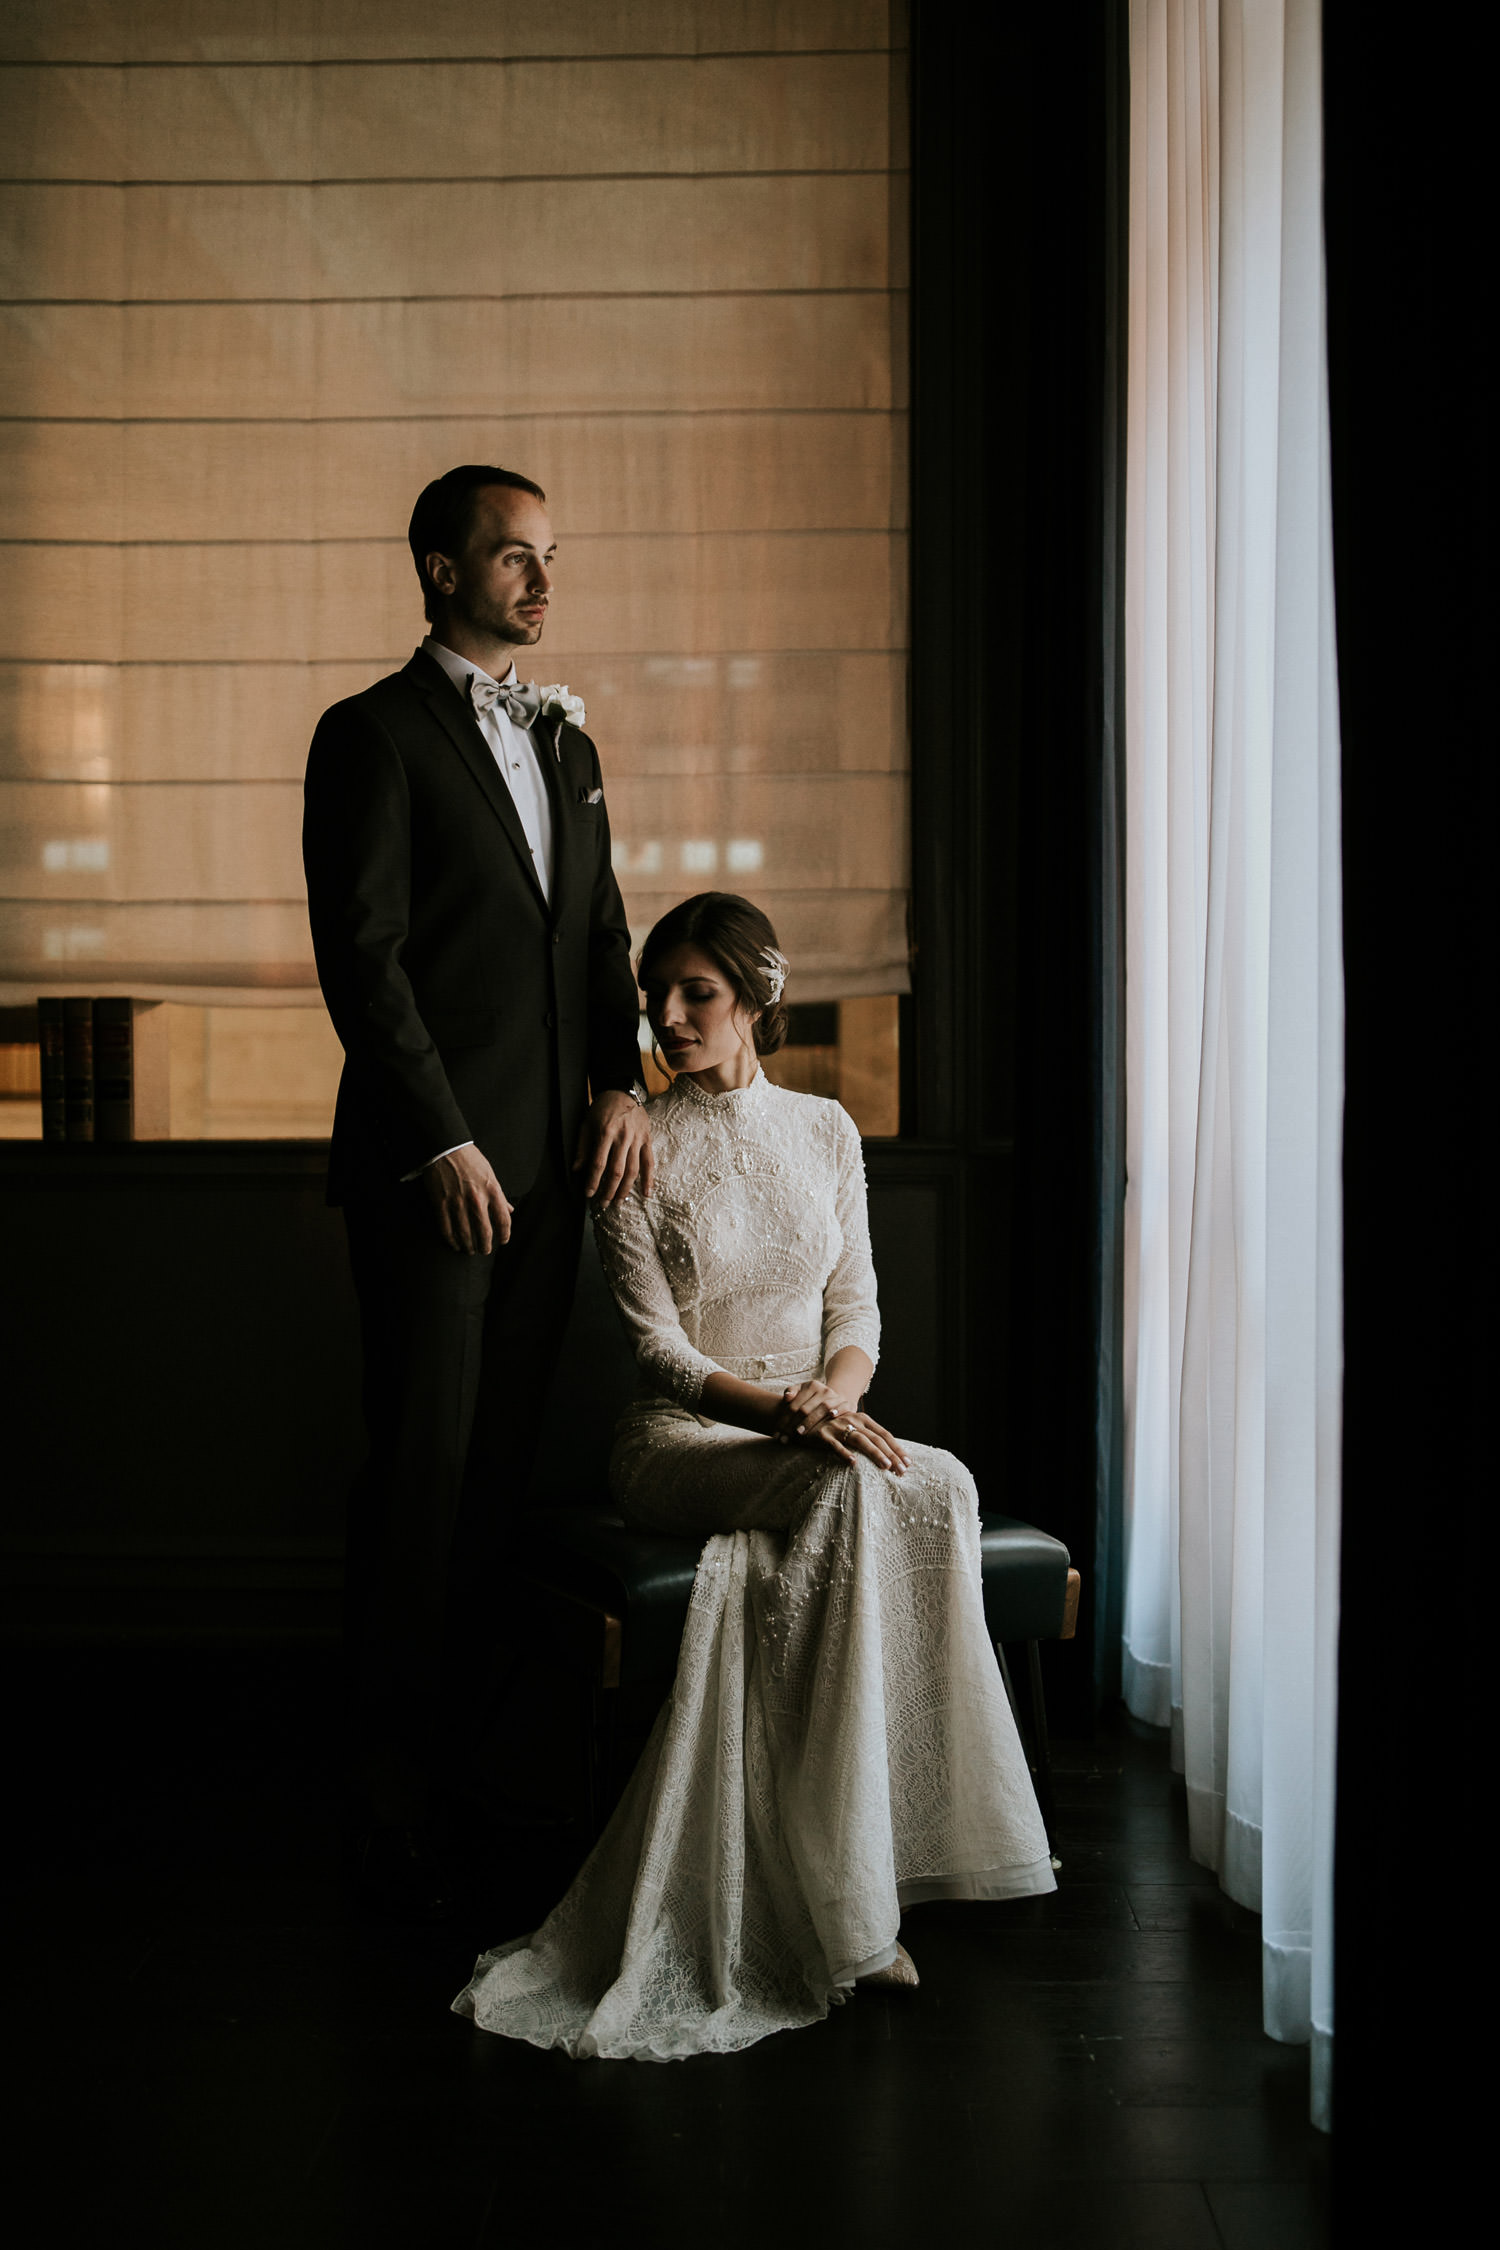 fine art portrait of the bride and groom photographed at the gray hotel in down town chicago